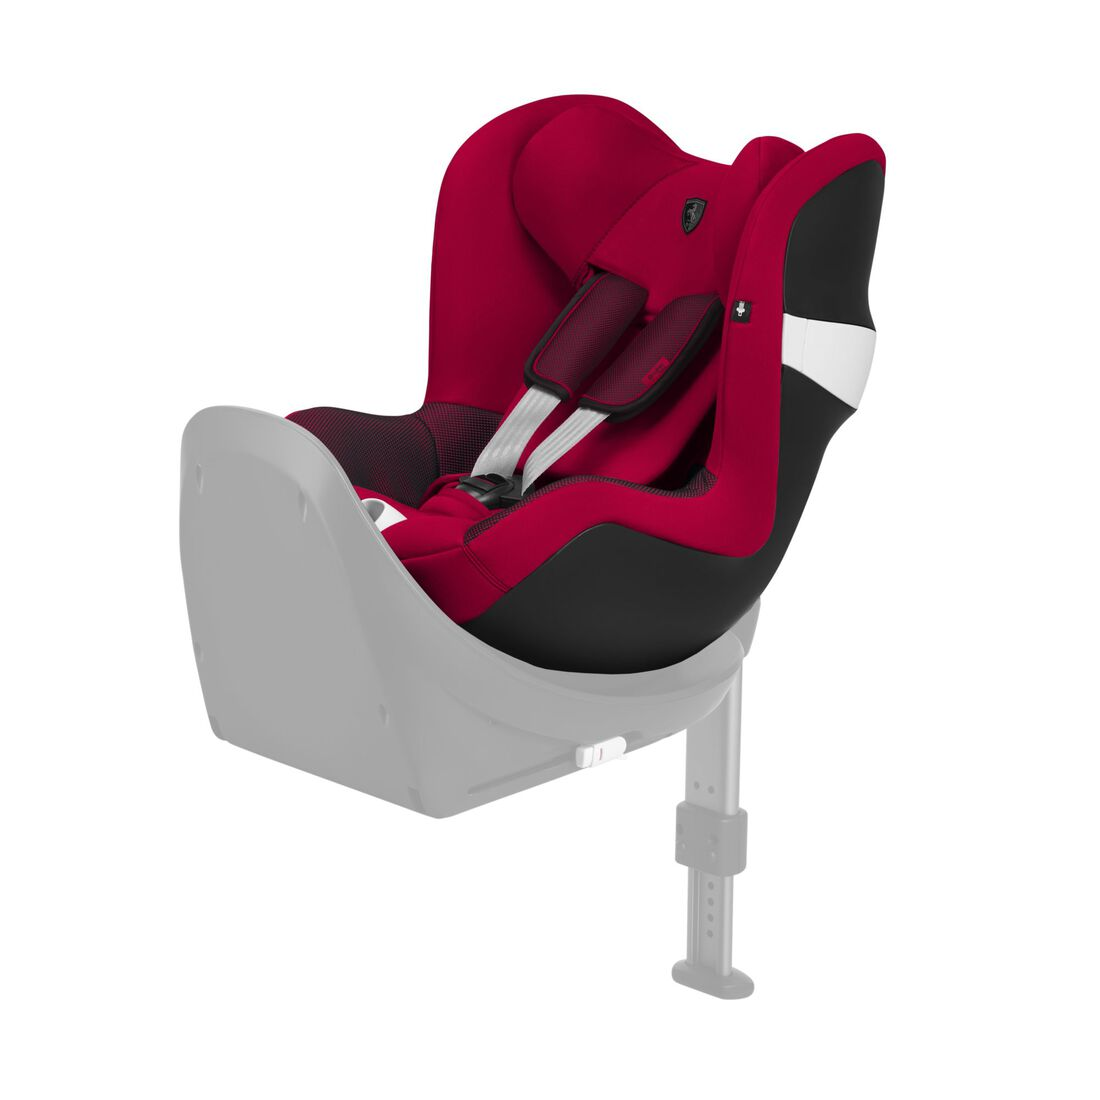 CYBEX Sirona M2 i-Size - Ferrari Racing Red in Ferrari Racing Red large Bild 1